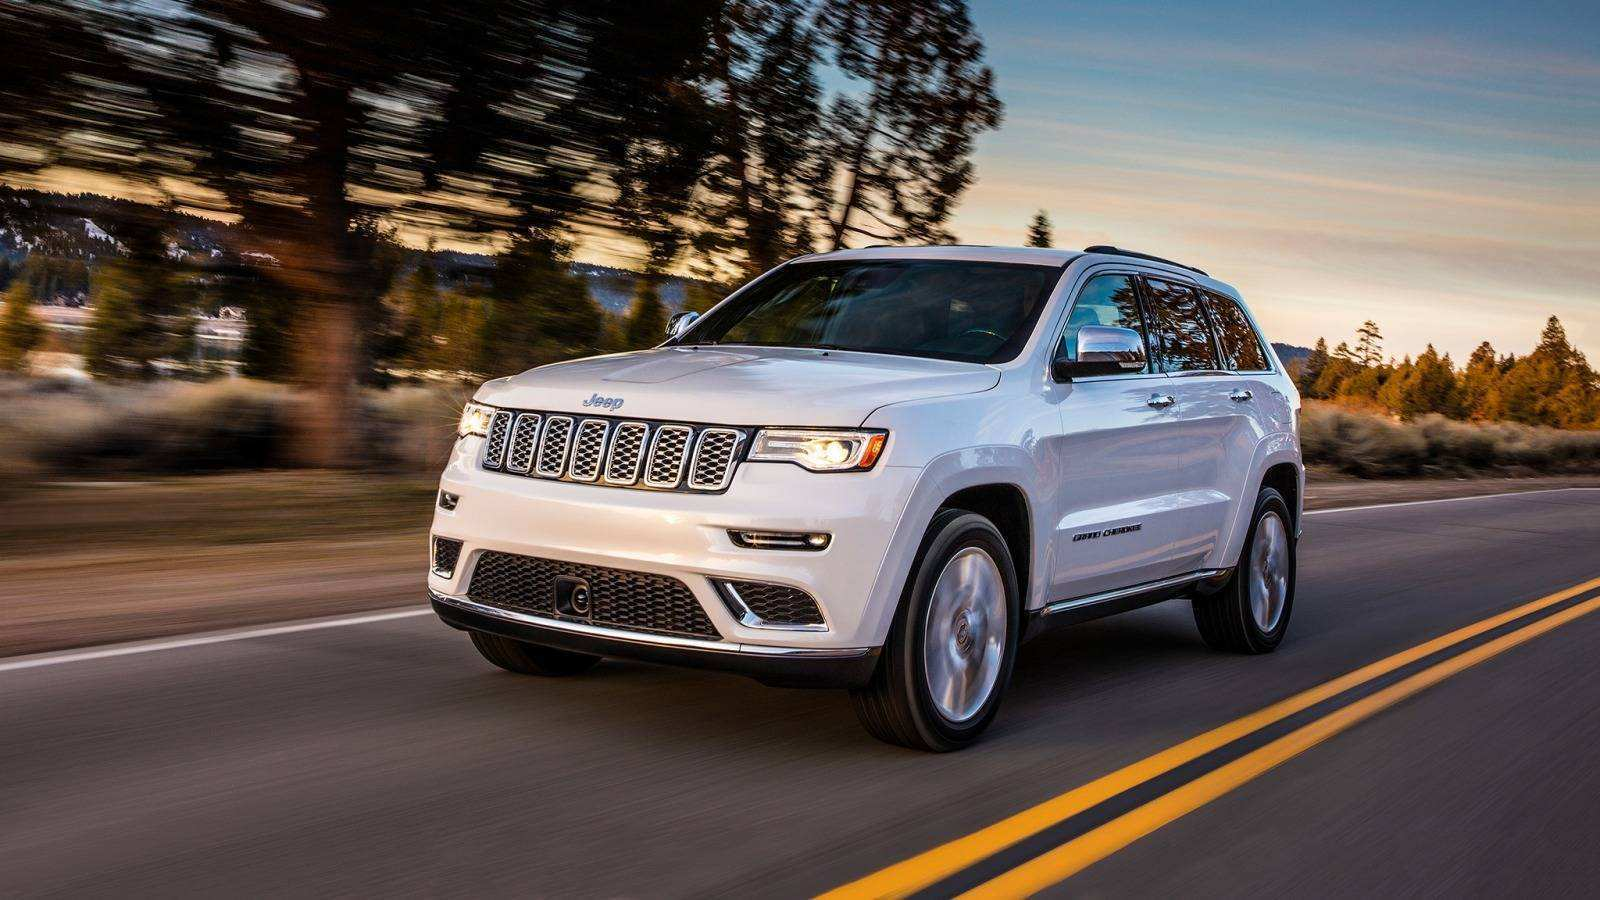 99 Best Review Jeep Cherokee 2019 Video Interior Exterior And Review Exterior by Jeep Cherokee 2019 Video Interior Exterior And Review